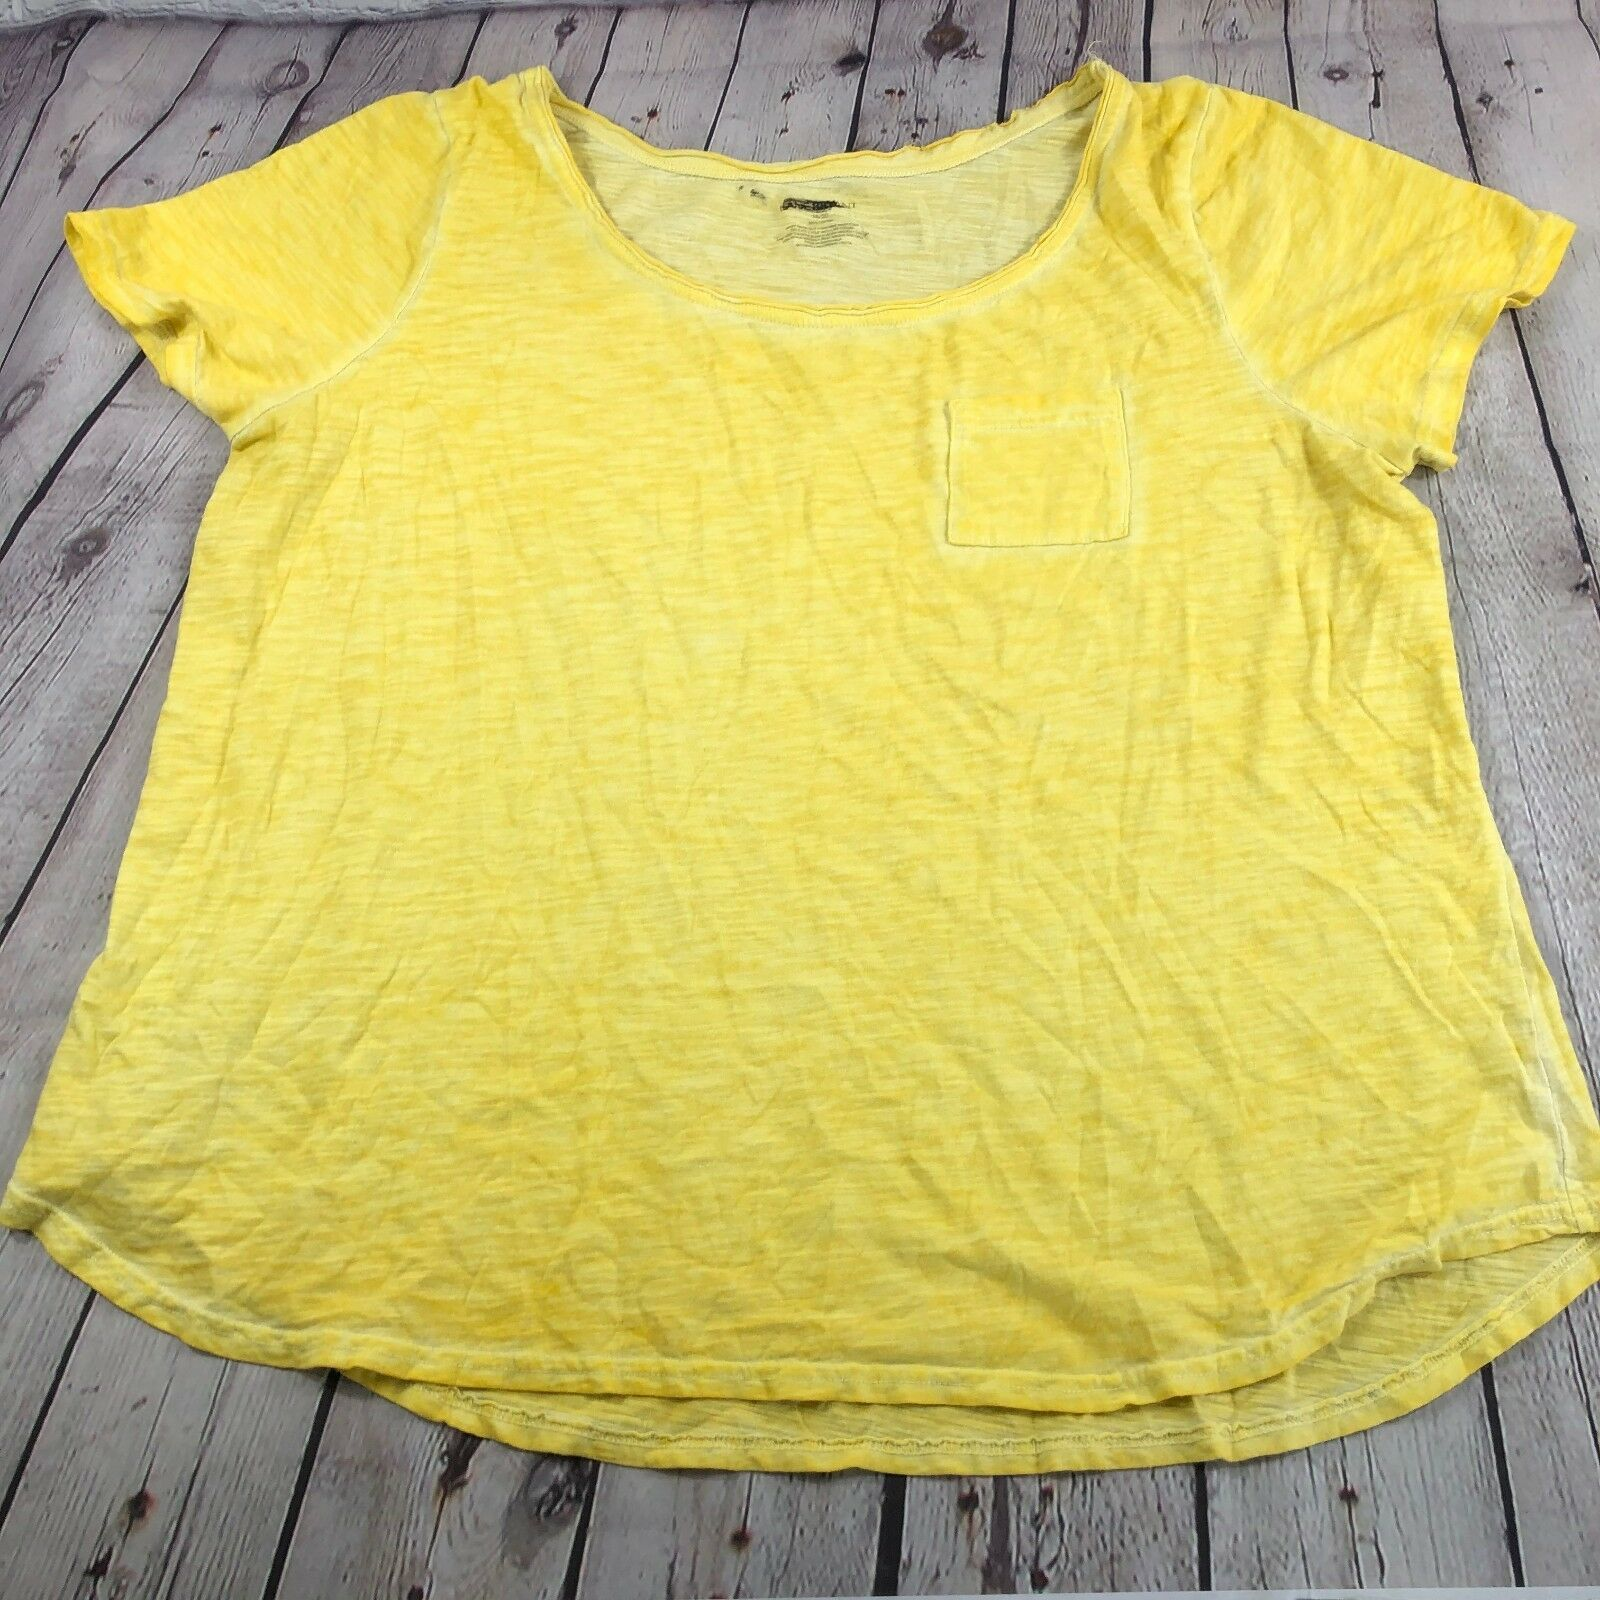 NWOT Lane Bryant Yellow Cotton Short Sleeve Tee with Pocket Plus Size Size 18/20 - $9.74